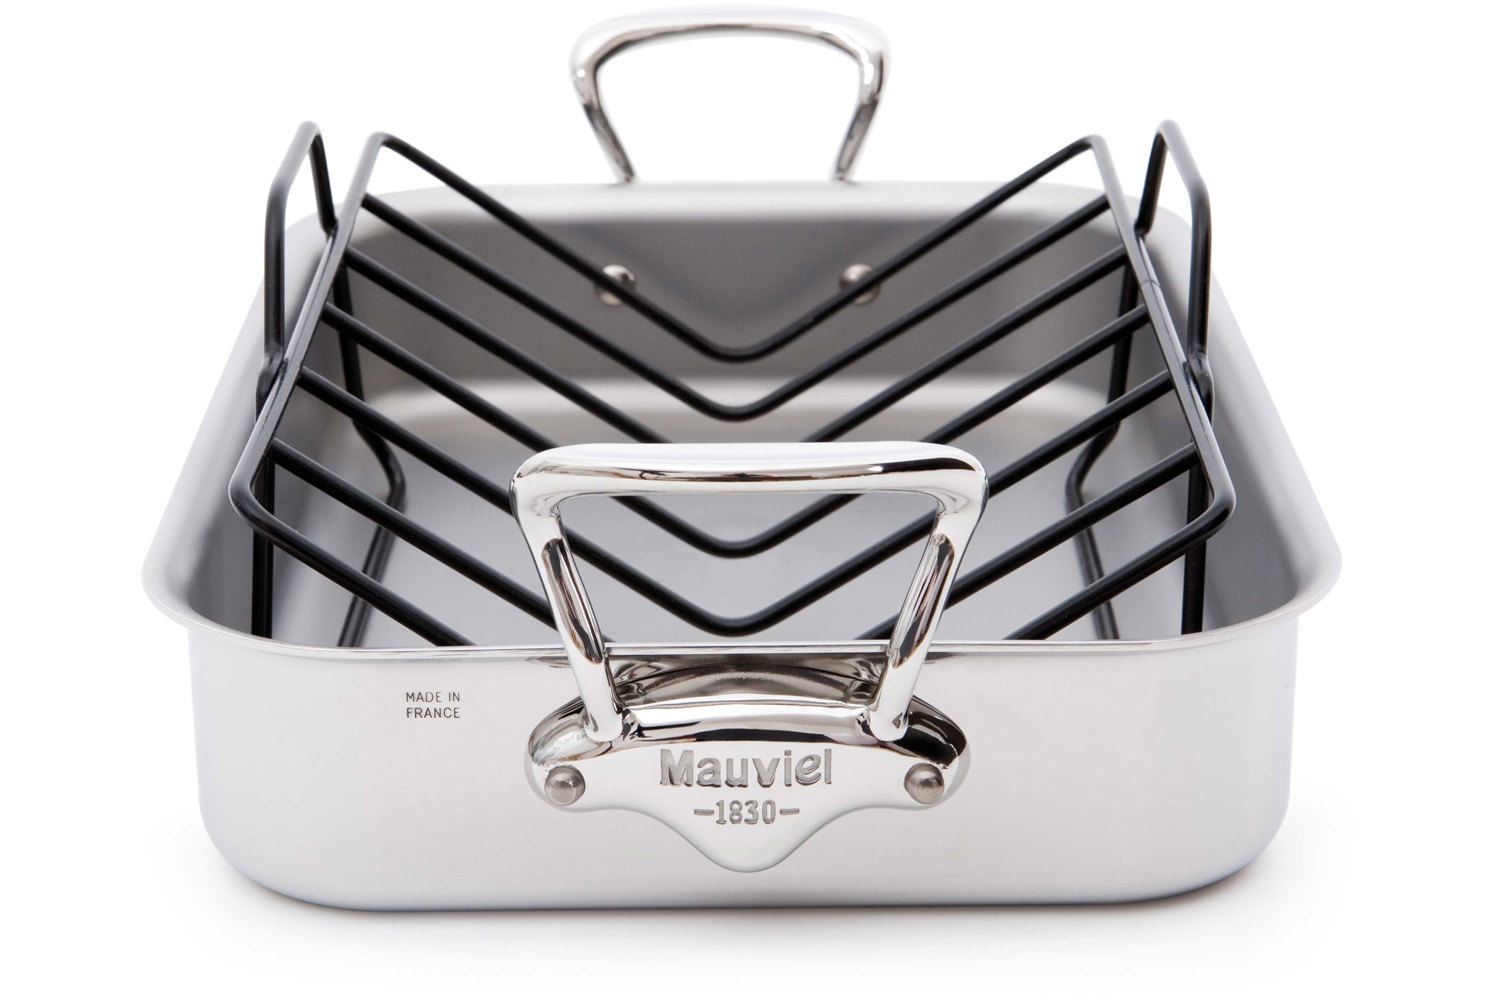 Mauviel M'cook Stainless Steel 15.7 x 11.8 inch Roasting Pan w/Rack